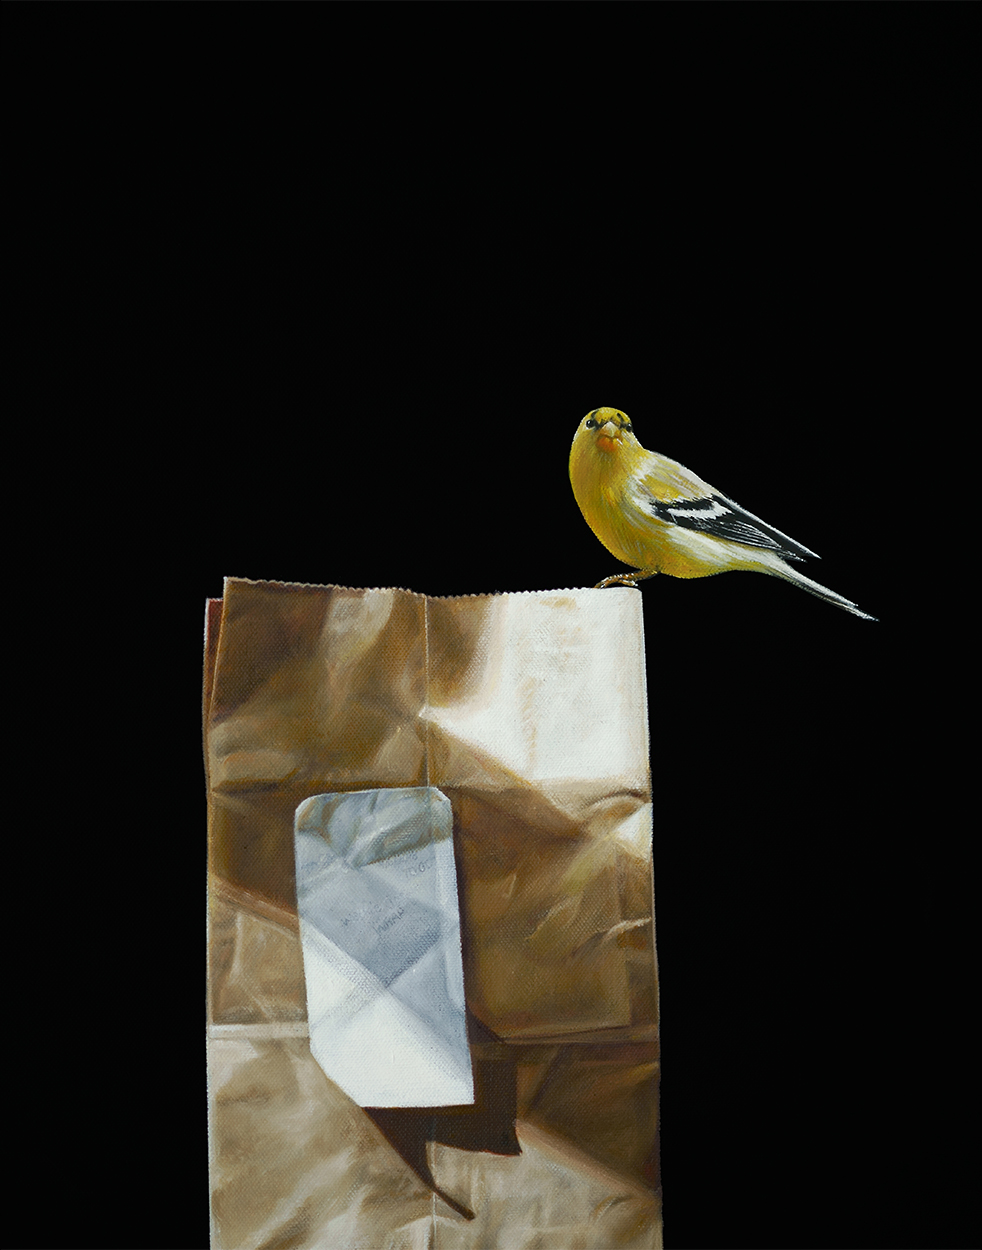 Take Out | 16 x 20 | Oil on canvas |  SOLD